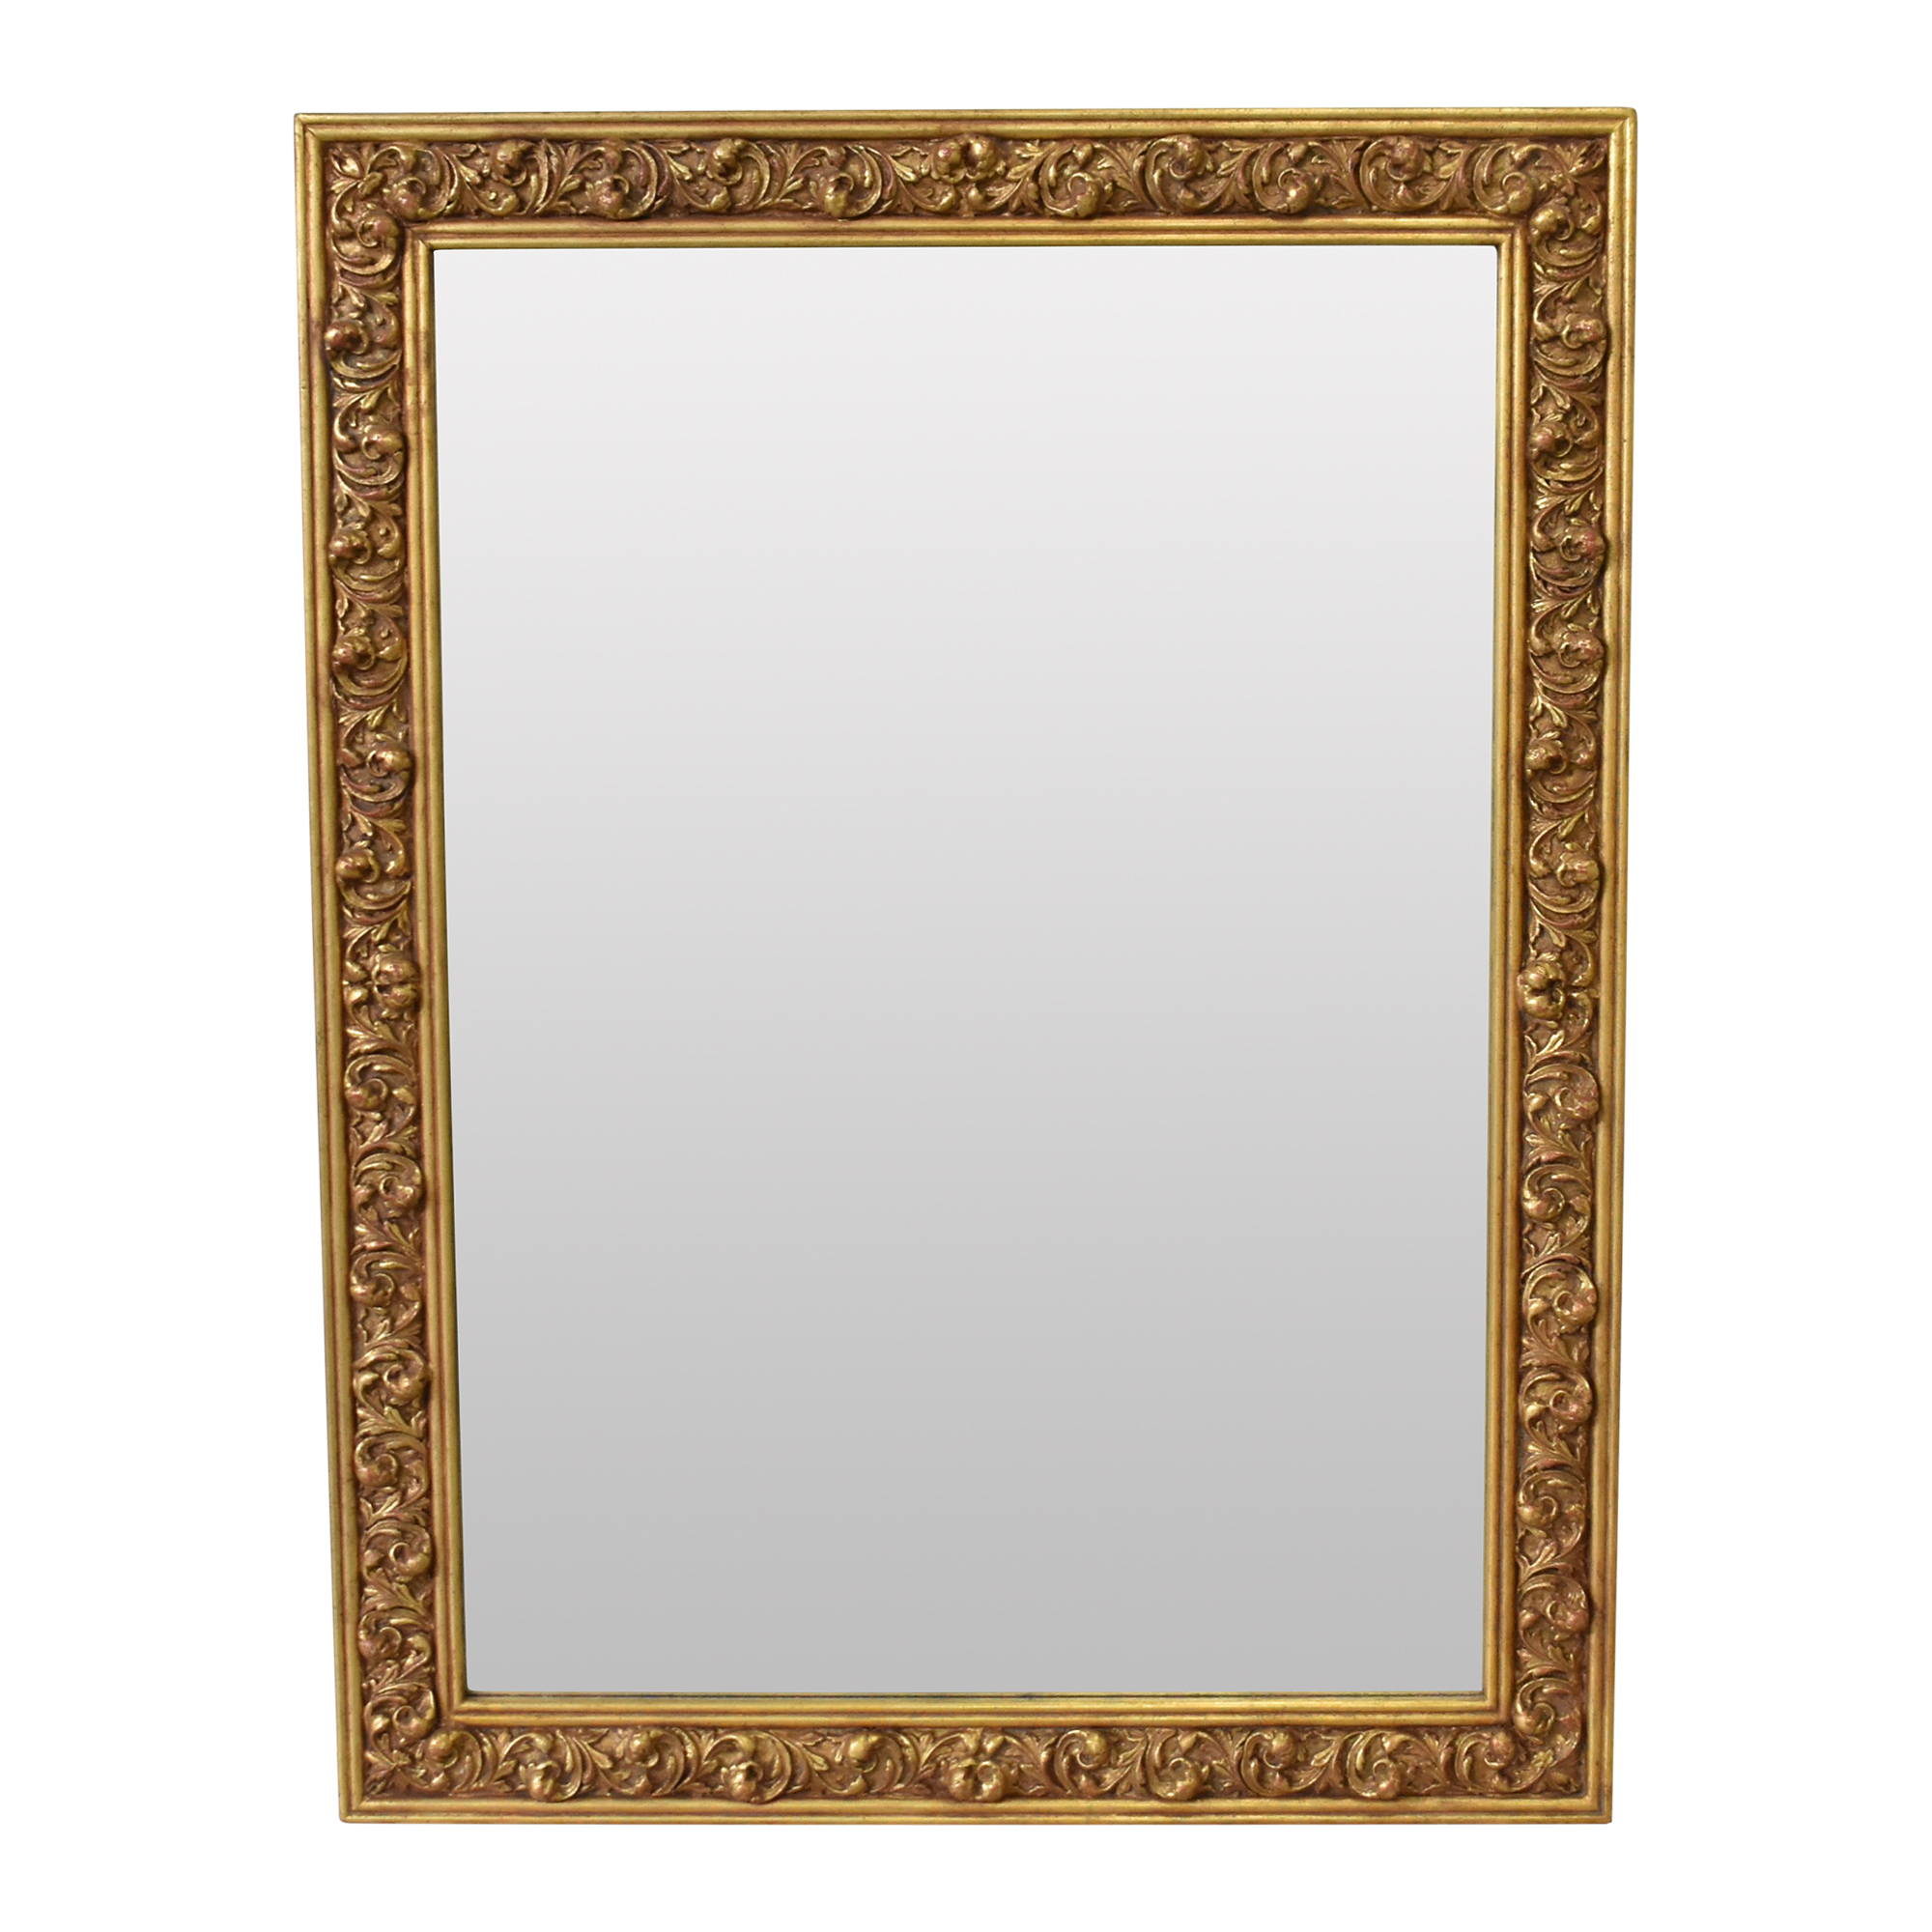 buy Friedman Brothers Decorative Arts Rectangular Wall Mirror Friedman Brothers Mirrors